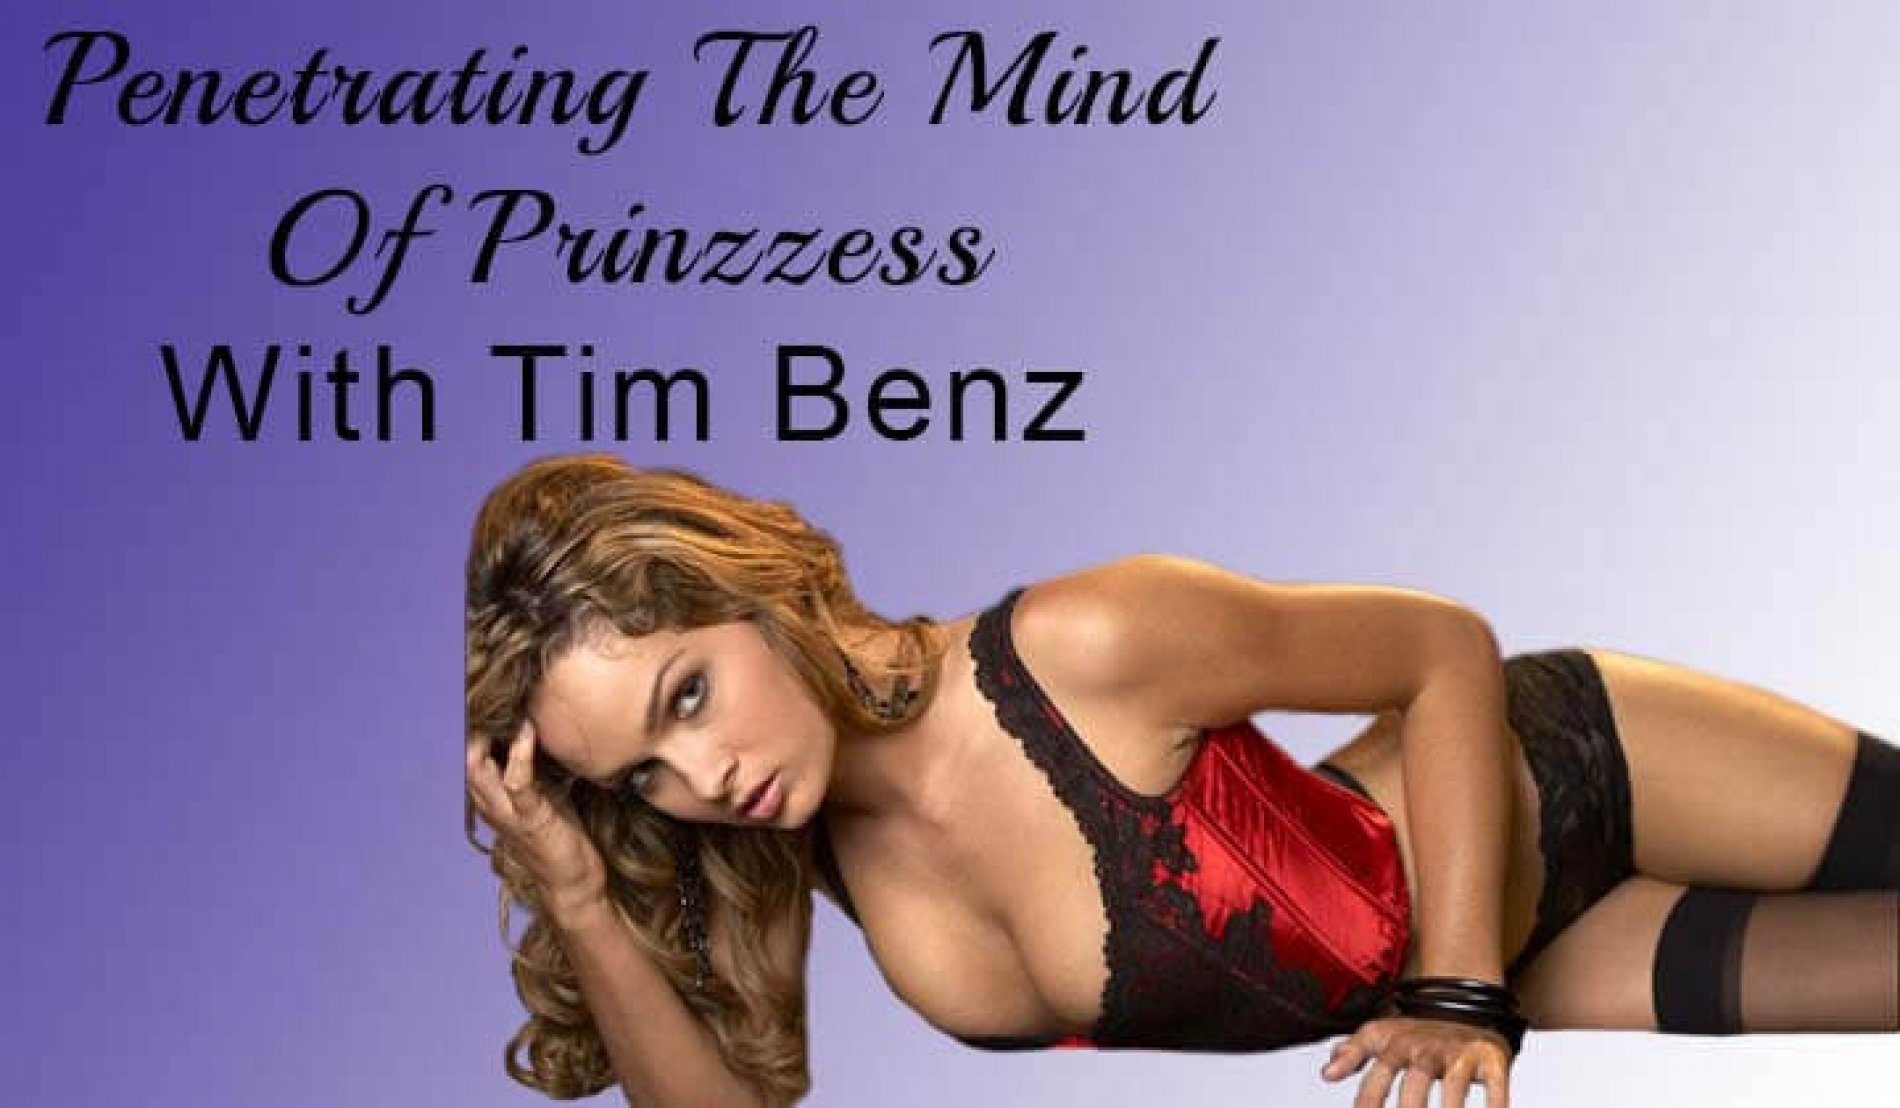 Penetrating the Mind of Prinzzess